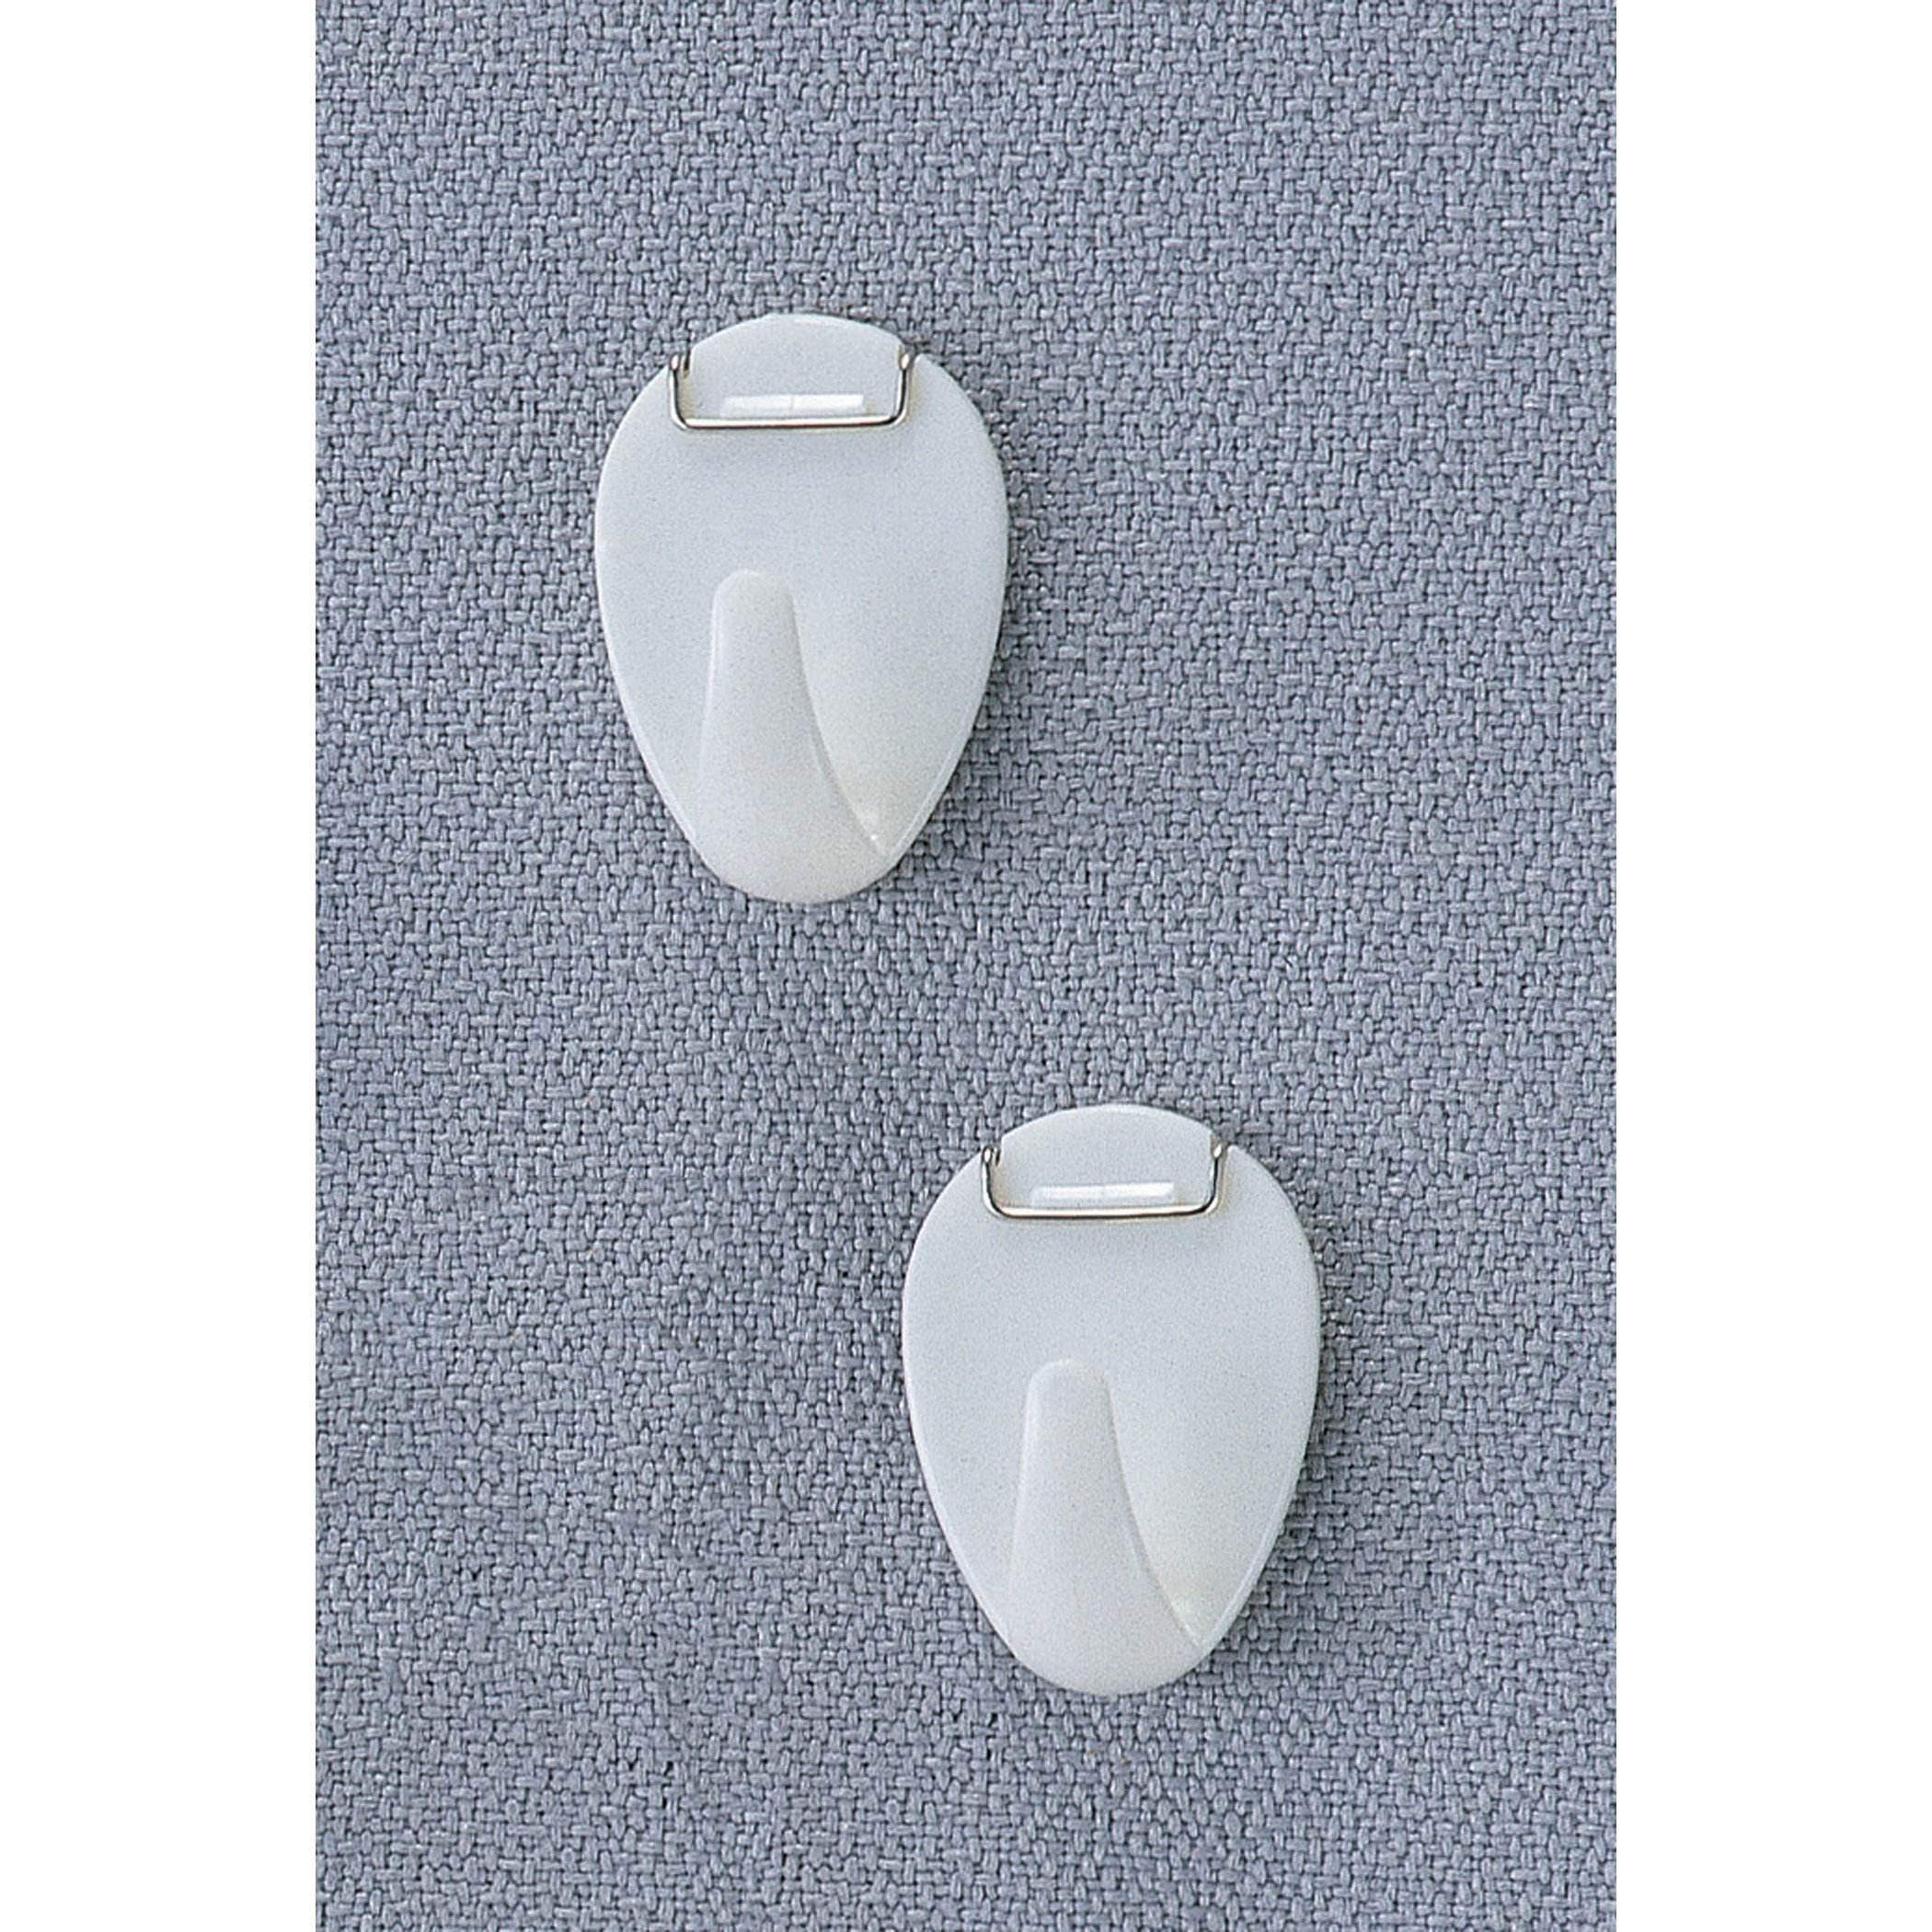 Oic Cubicle Hooks - 5 / Pack - White Color - Metal, Plastic Material (oic-30180)